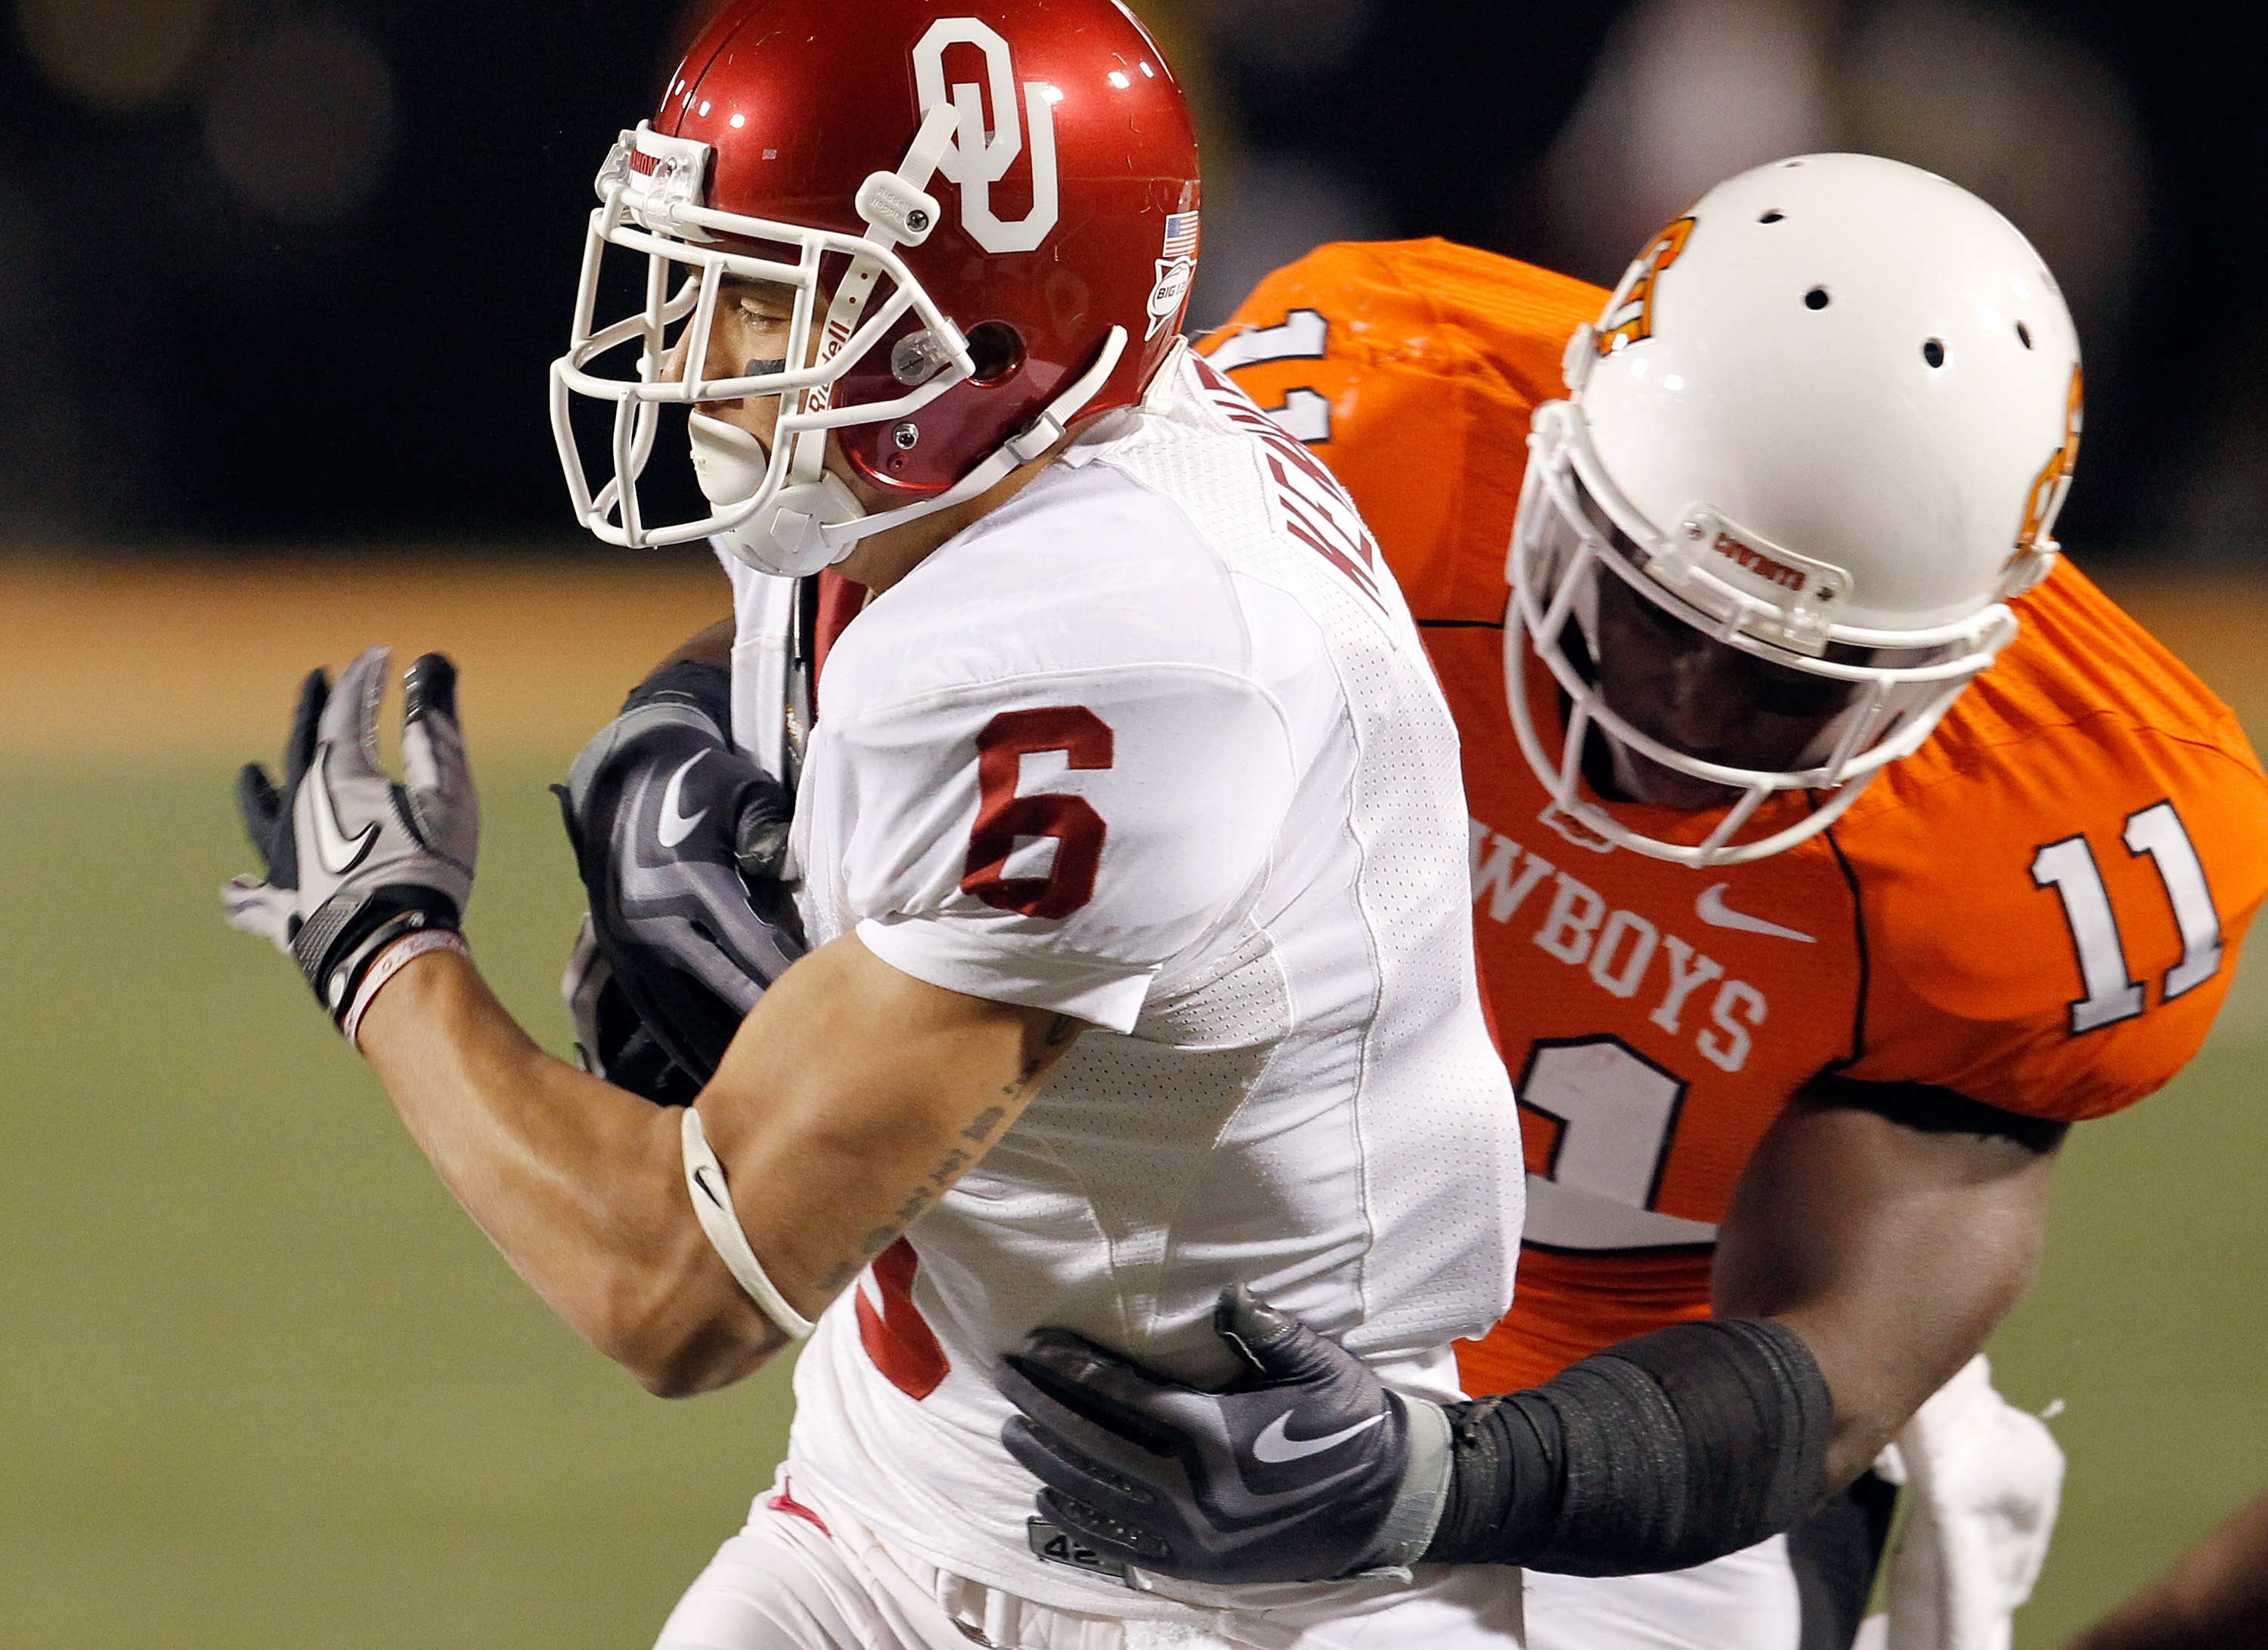 STILLWATER, OK - NOVEMBER 27:  Wide receiver Cameron Kenney #6 of the Oklahoma Sooners carries the ball against linebacker Shaun Lewis #11 of the Oklahoma State Cowboys at Boone Pickens Stadium on November 27, 2010 in Stillwater, Oklahoma.  The Sooners be